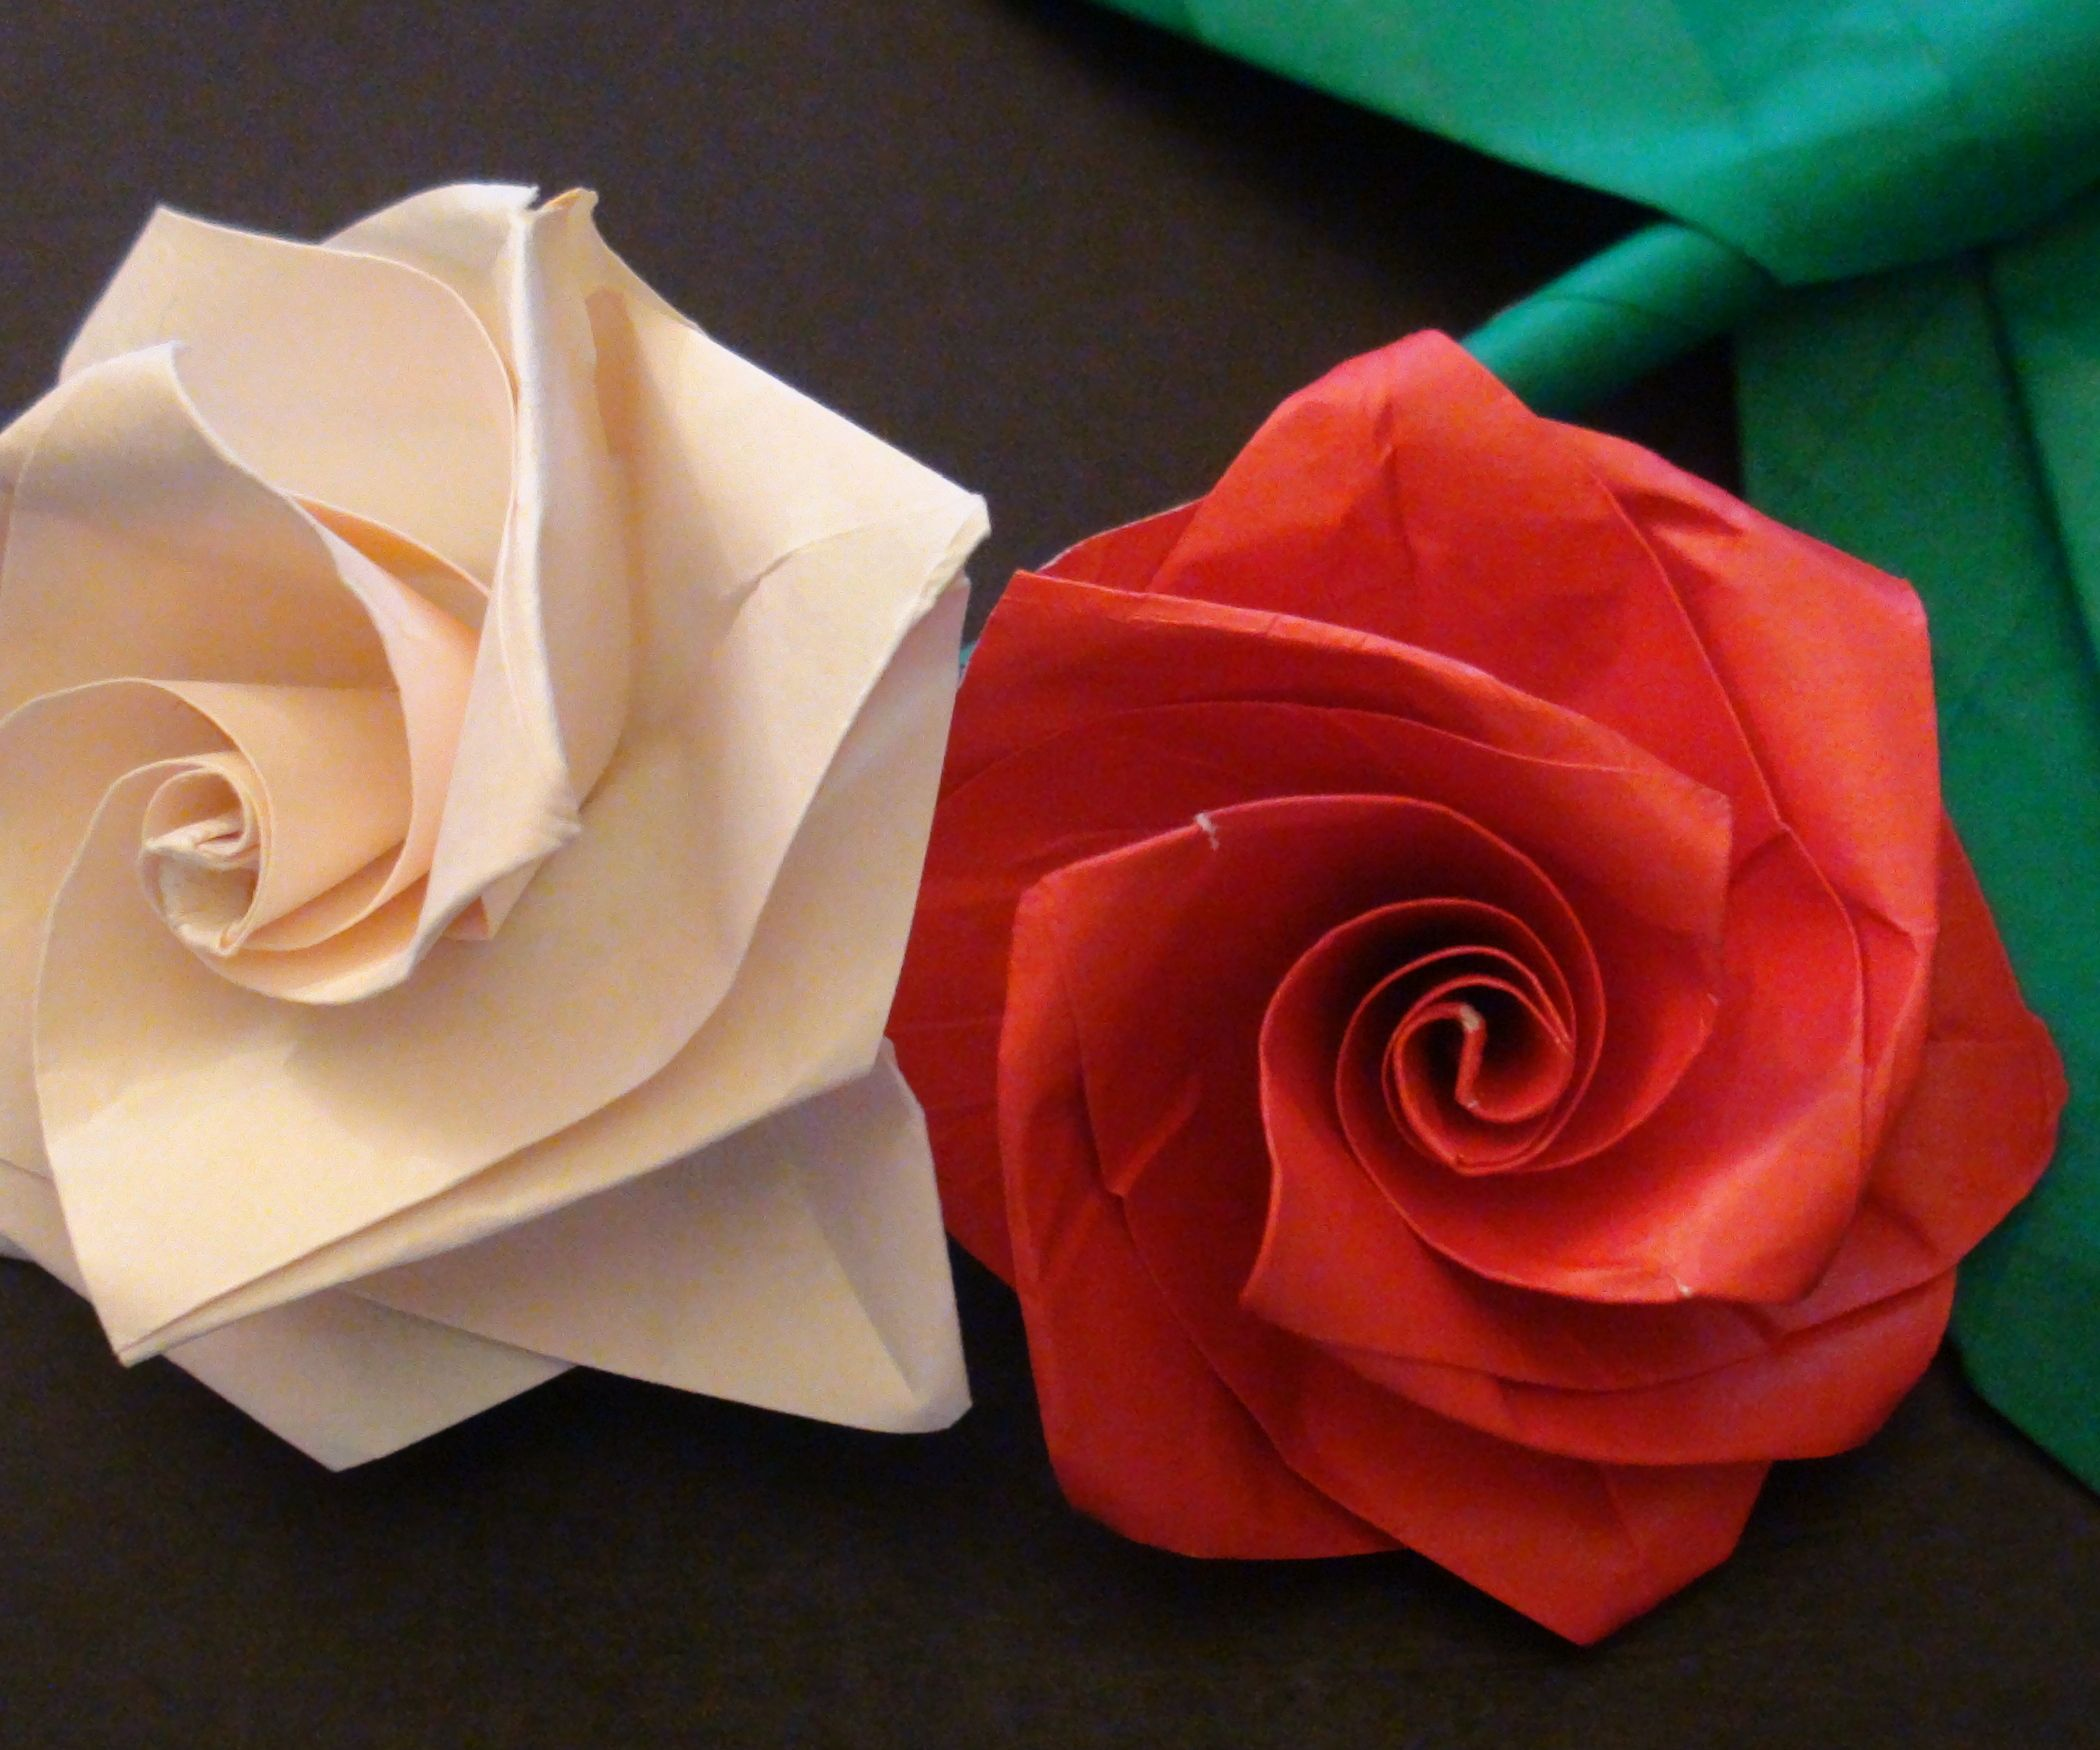 How to make an easy origami rose bouquet easy origami origami how to make an easy origami rose bouquet izmirmasajfo